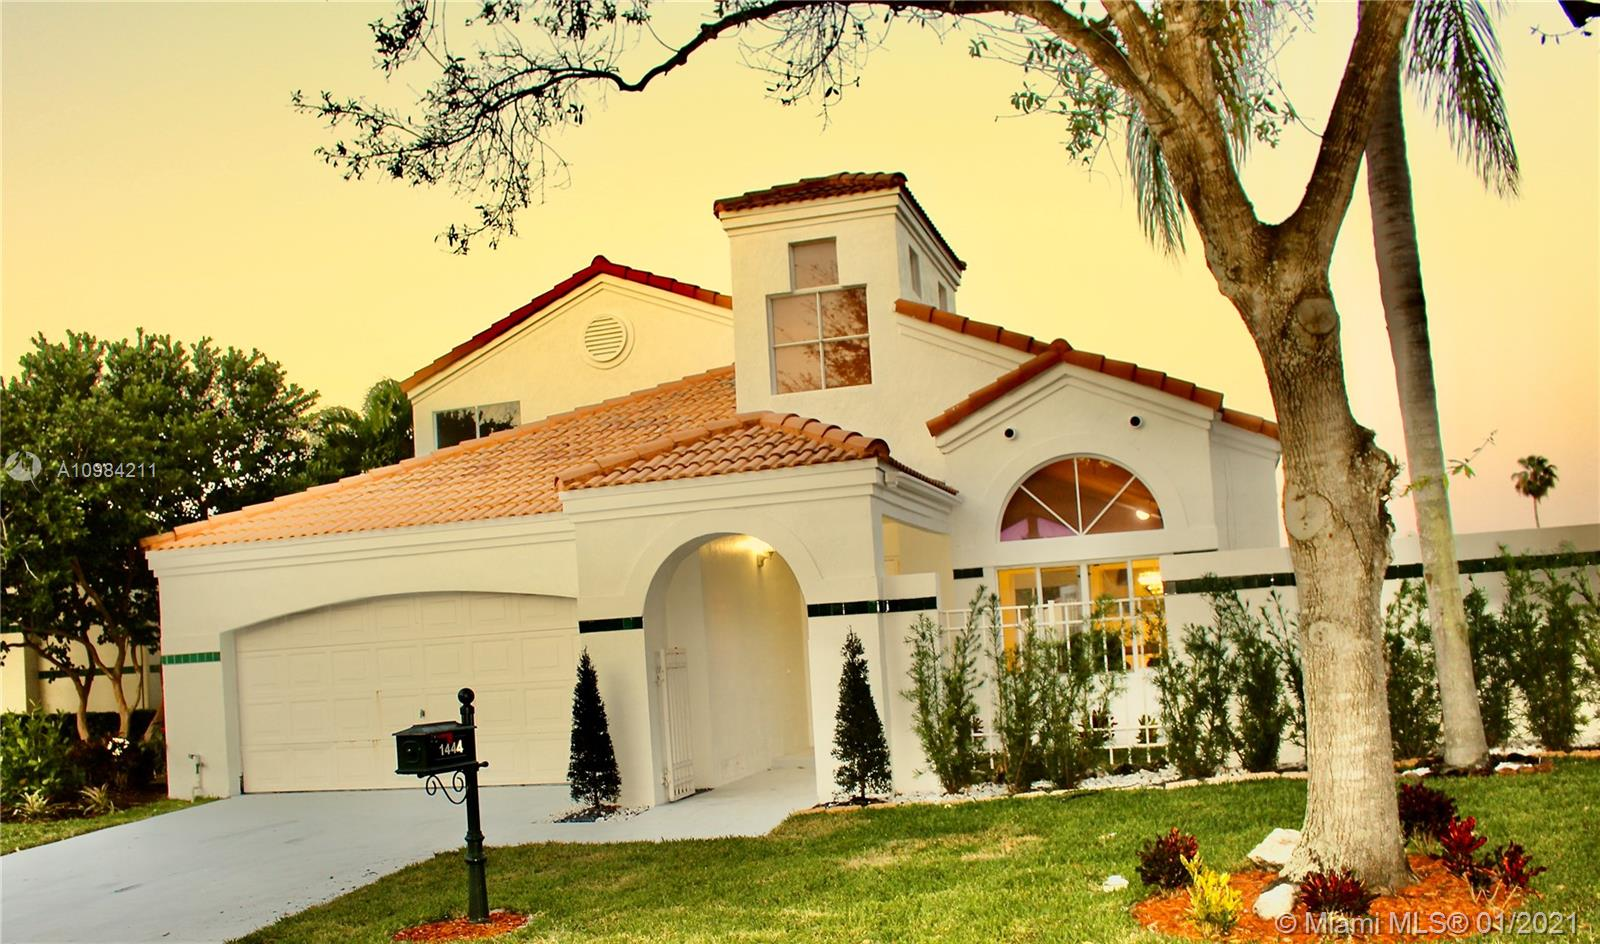 Priced to Sell!!! Completely remodeled single family home in sought after Coral Harbour Gated Community, with only 86 single family homes and a 5 minute walk to Weston City Center. This waterfront 2 story home Features 4 Bedrooms + Den/Office & 2 Full Baths 1 half bath. Completely Upgraded; New Kitchen with Quartz Counters, New Cabinets & Appliances, All Bathrooms beautifully Remodeled. Wood Floors and New LED lighting throughout, New AC Unit, New Water Heater, Washer and Dryer, 2 Car Garage, Storage, Office, resurfaced Pool, A+ Schools District and more.